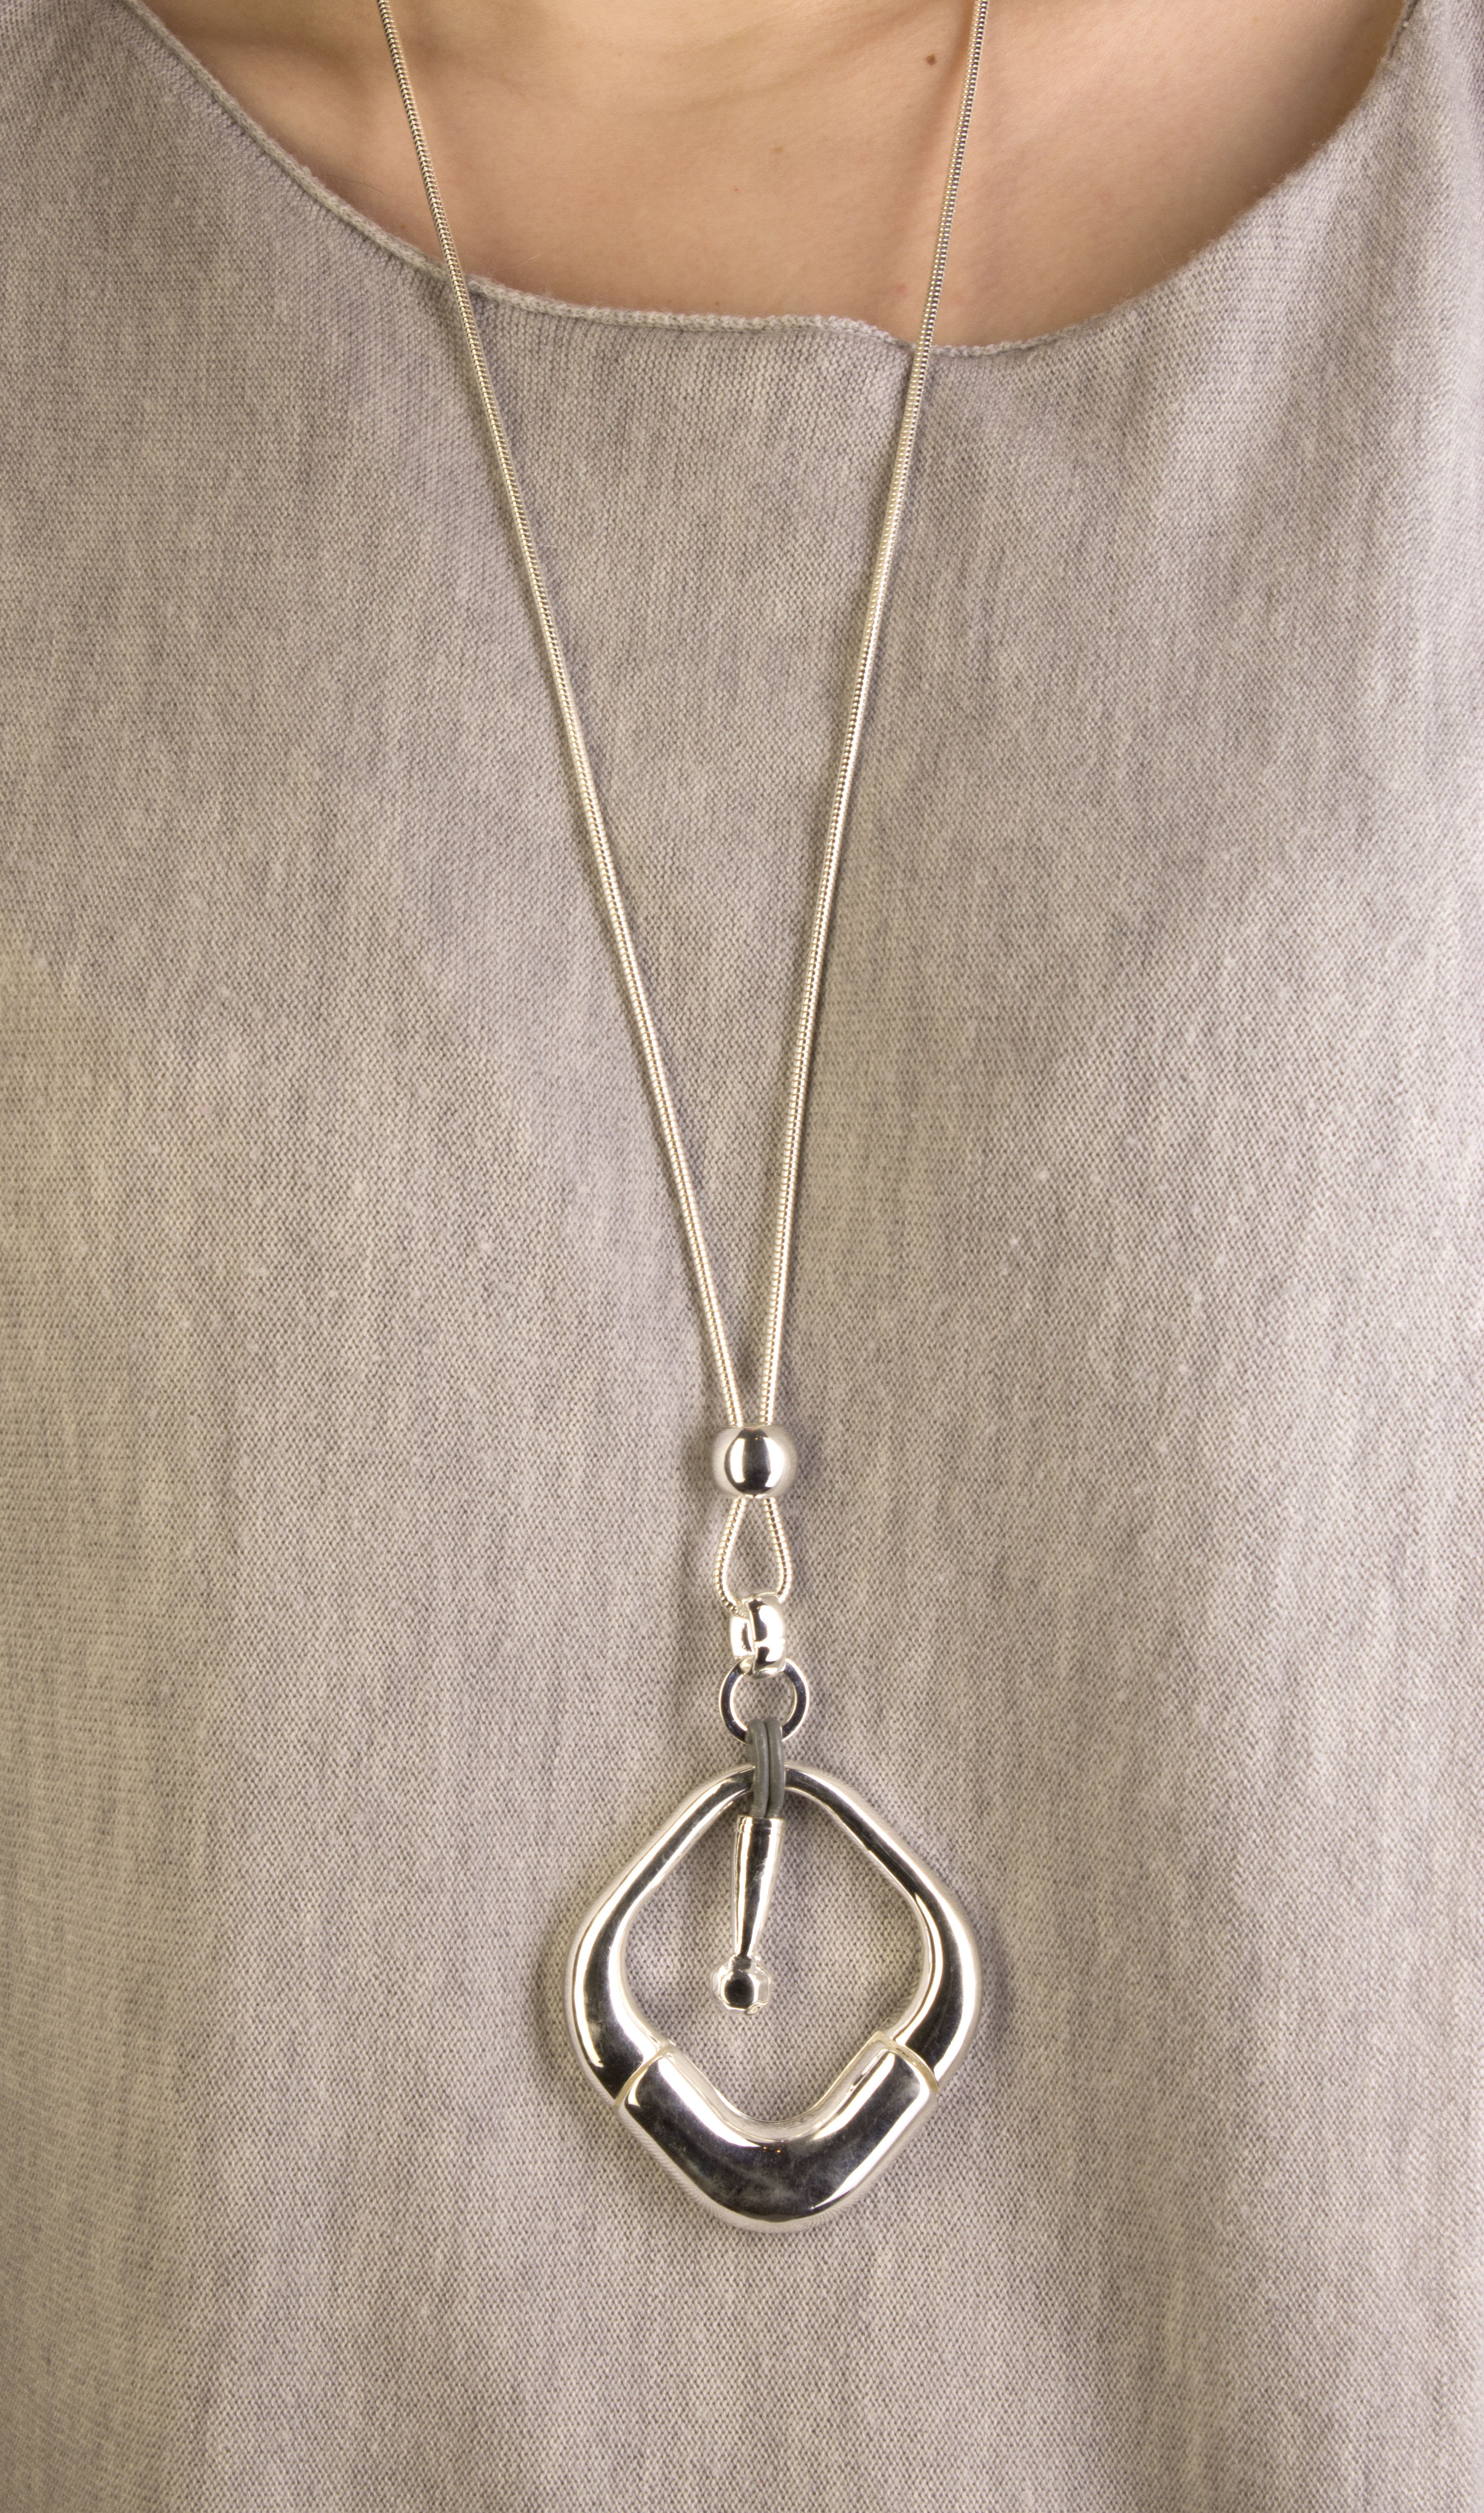 Long silver necklace with chunky silver pendant jane mckenzie long silver necklace with chunky silver pendant aloadofball Choice Image